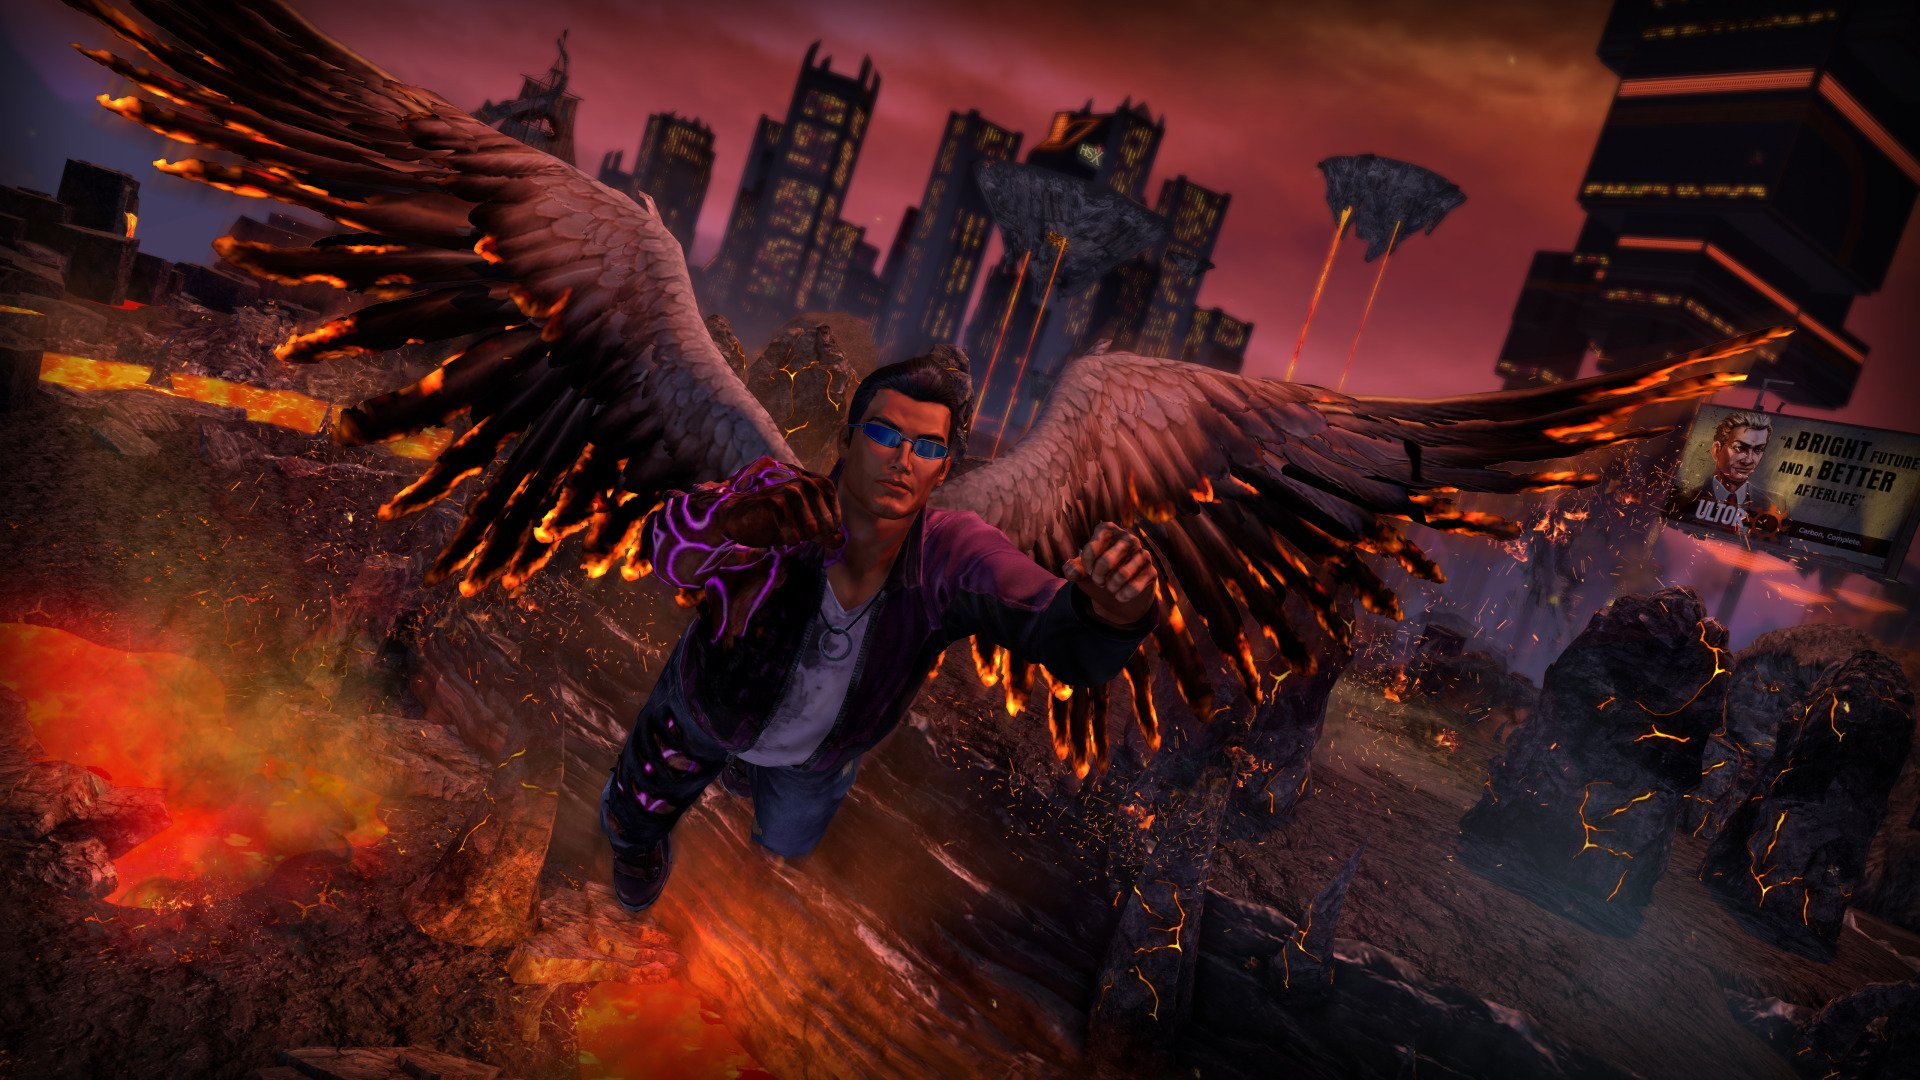 saints_row_gate_out_of_hell-2608747.jpg